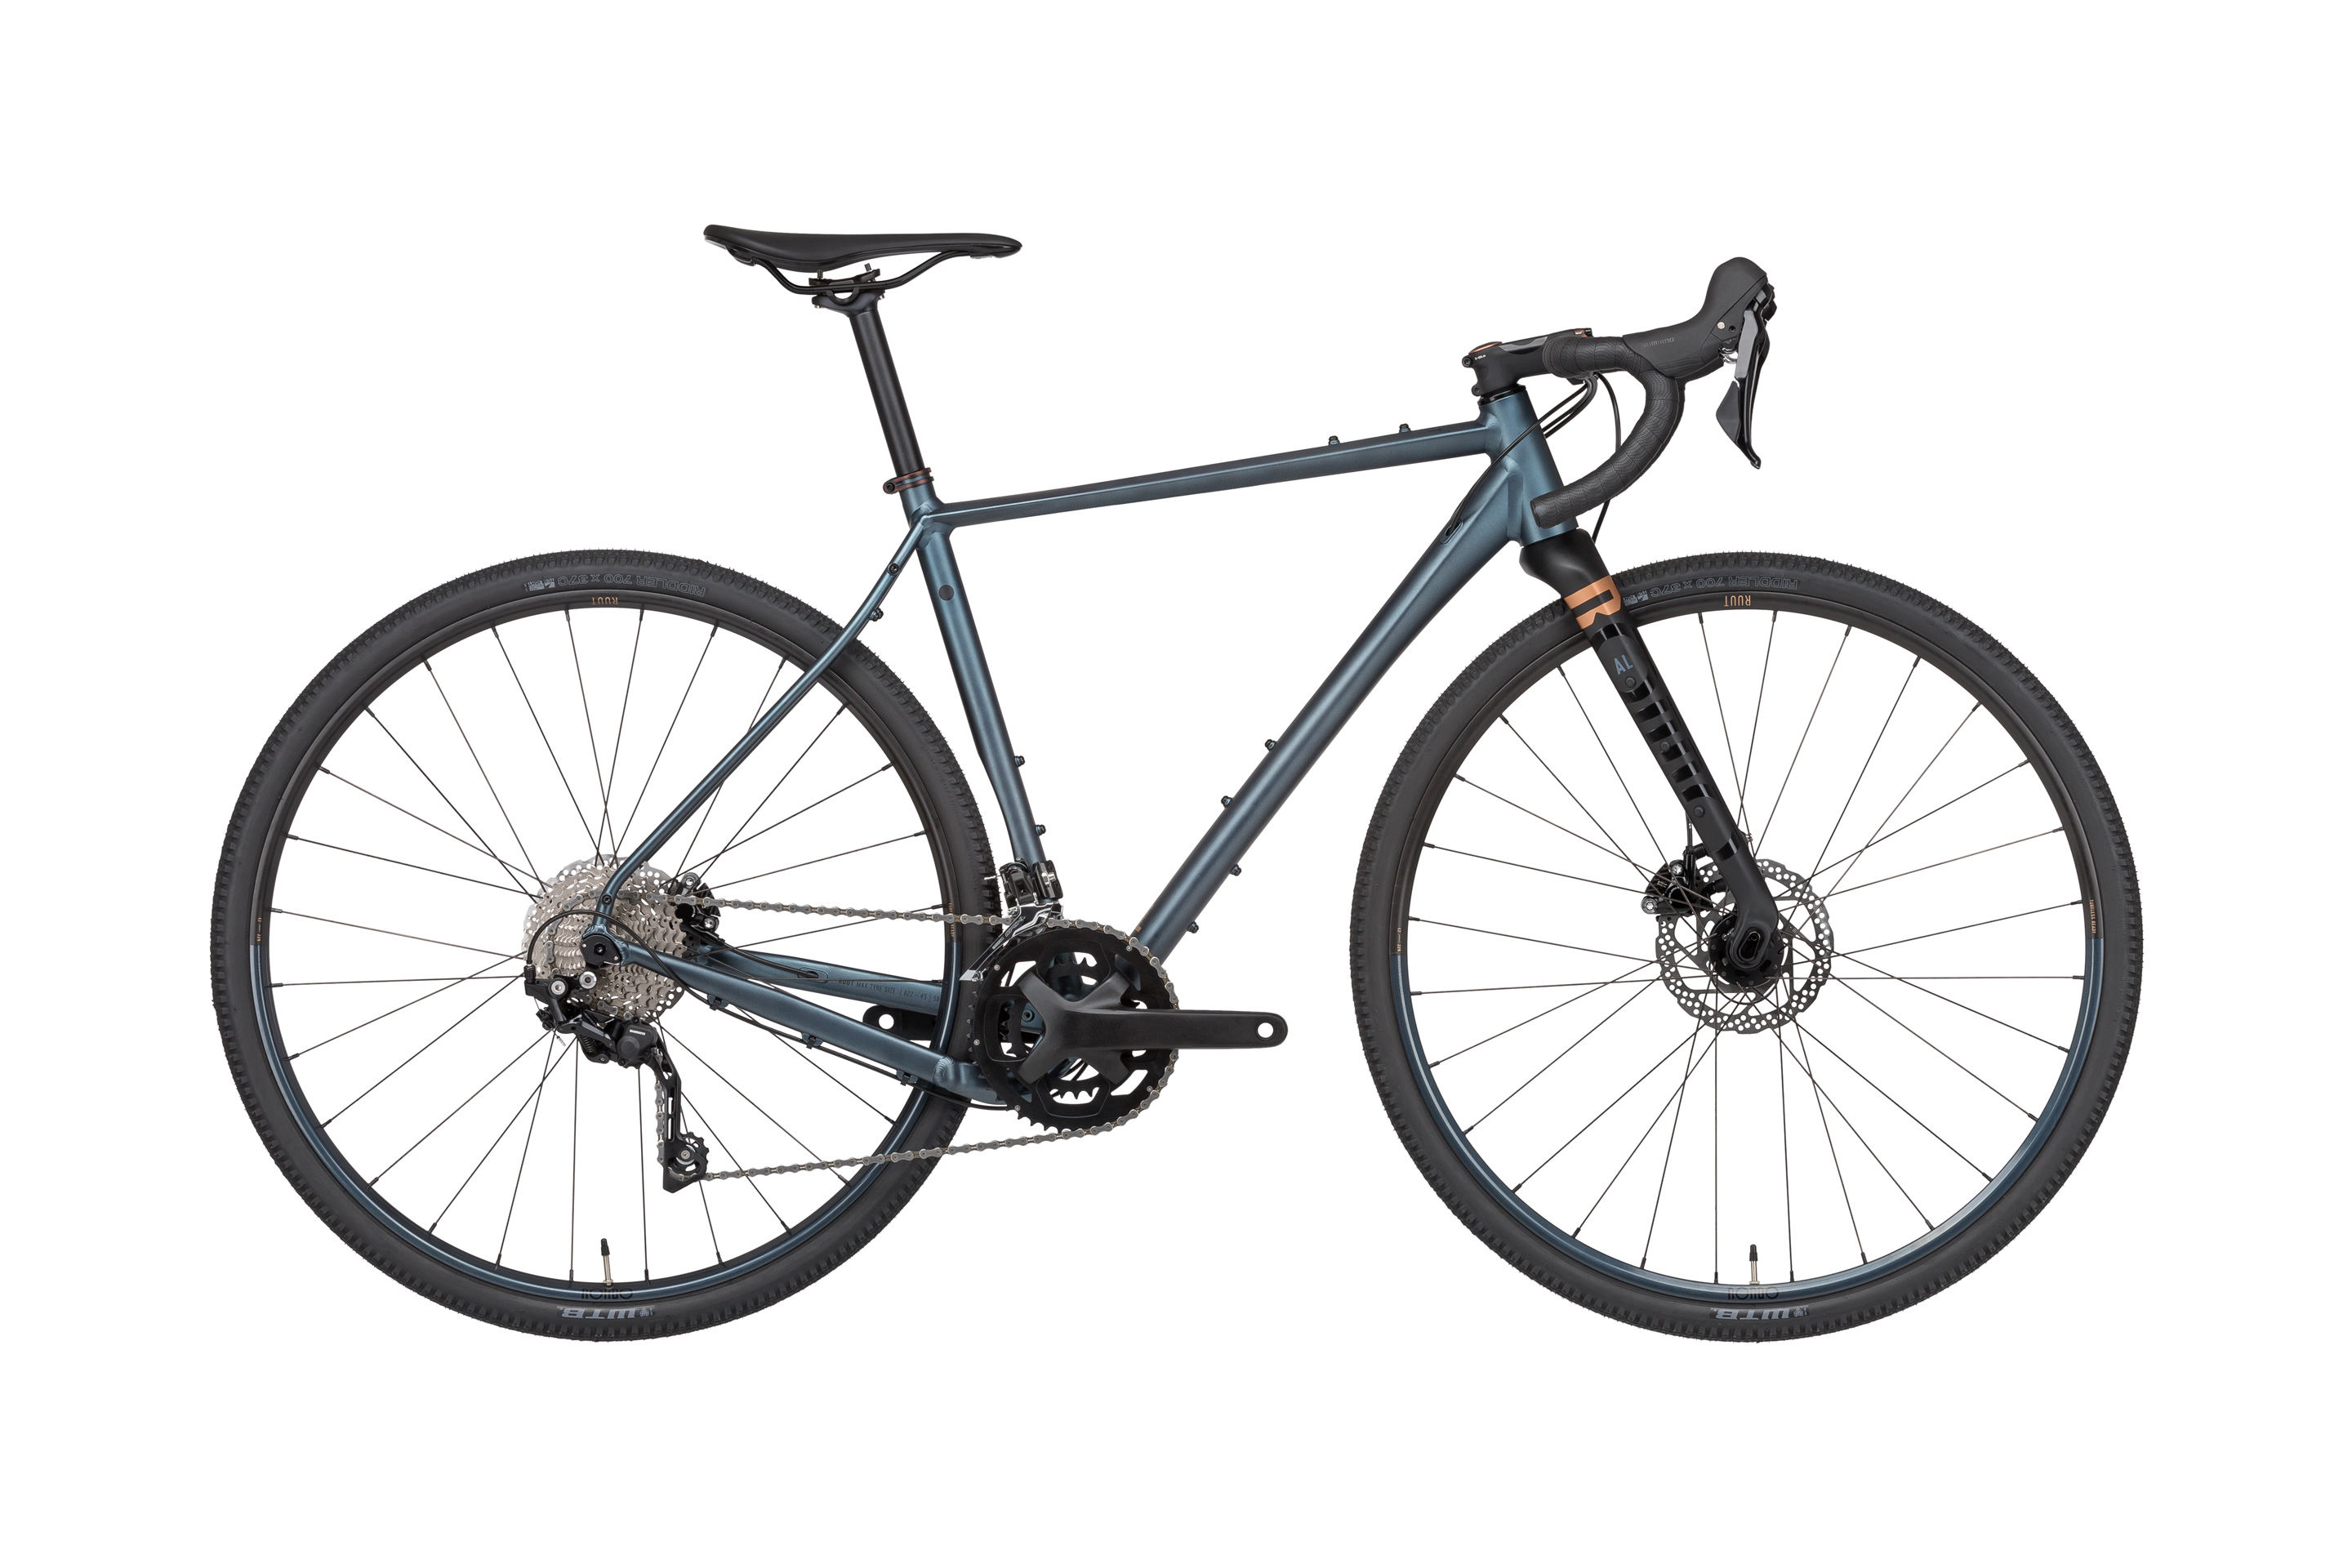 Rondo Ruut AL1 - 2X Gravel Plus Bike